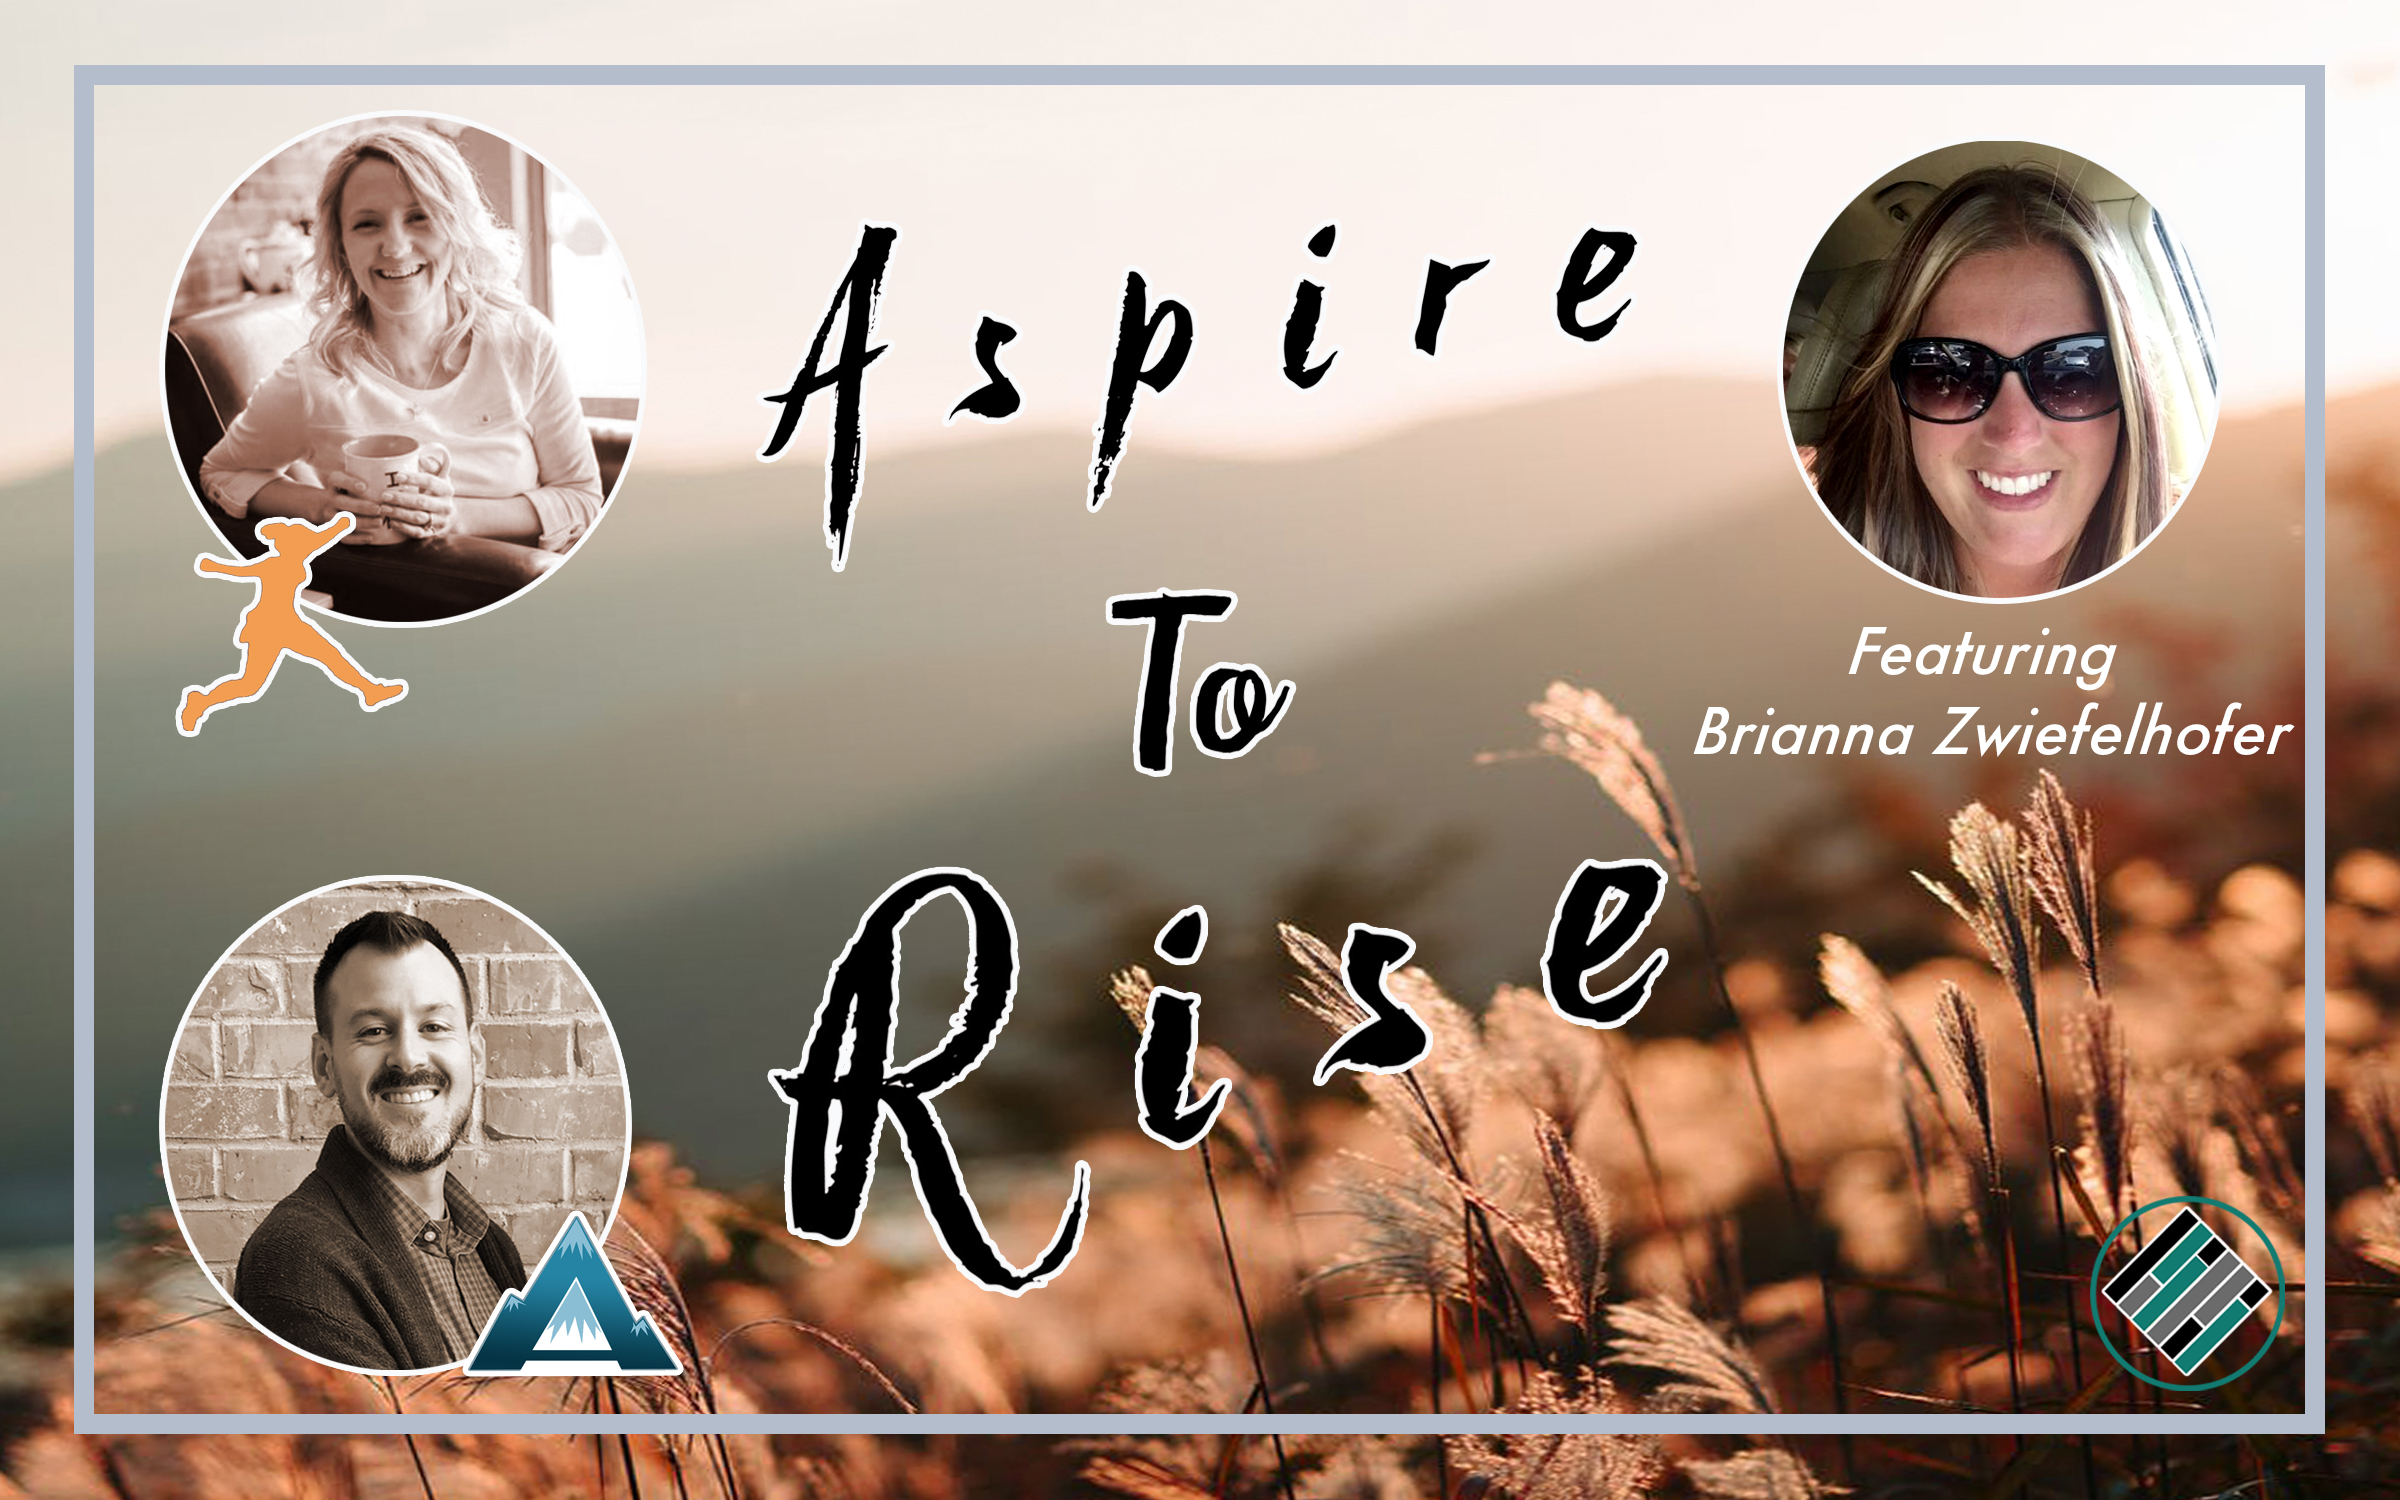 Joshua Stamper, Sarah Johnson, #AspireLead, #InAwetoRISE, Aspire: The Leadership Development Podcast, Aspire to Rise